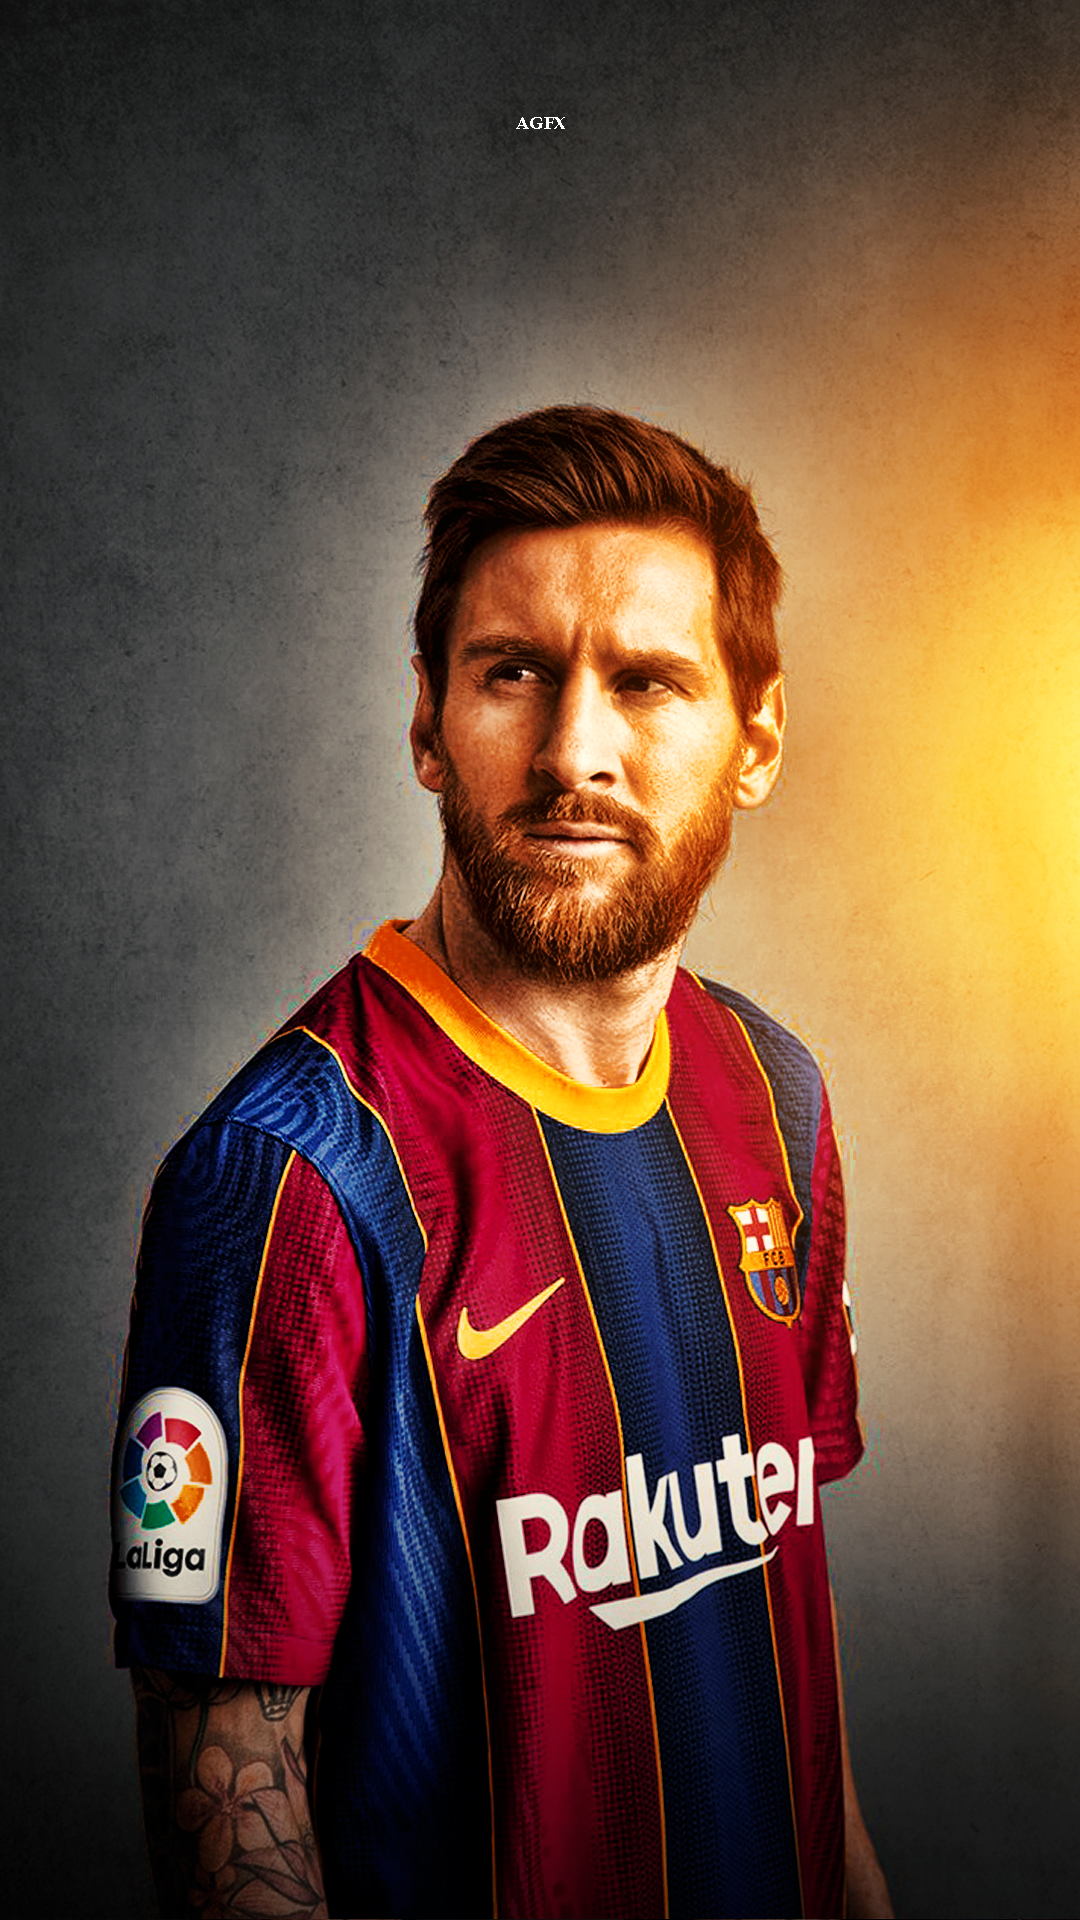 lionel messi in 2020 messi team lionel messi barcelona football lionel messi barcelona football